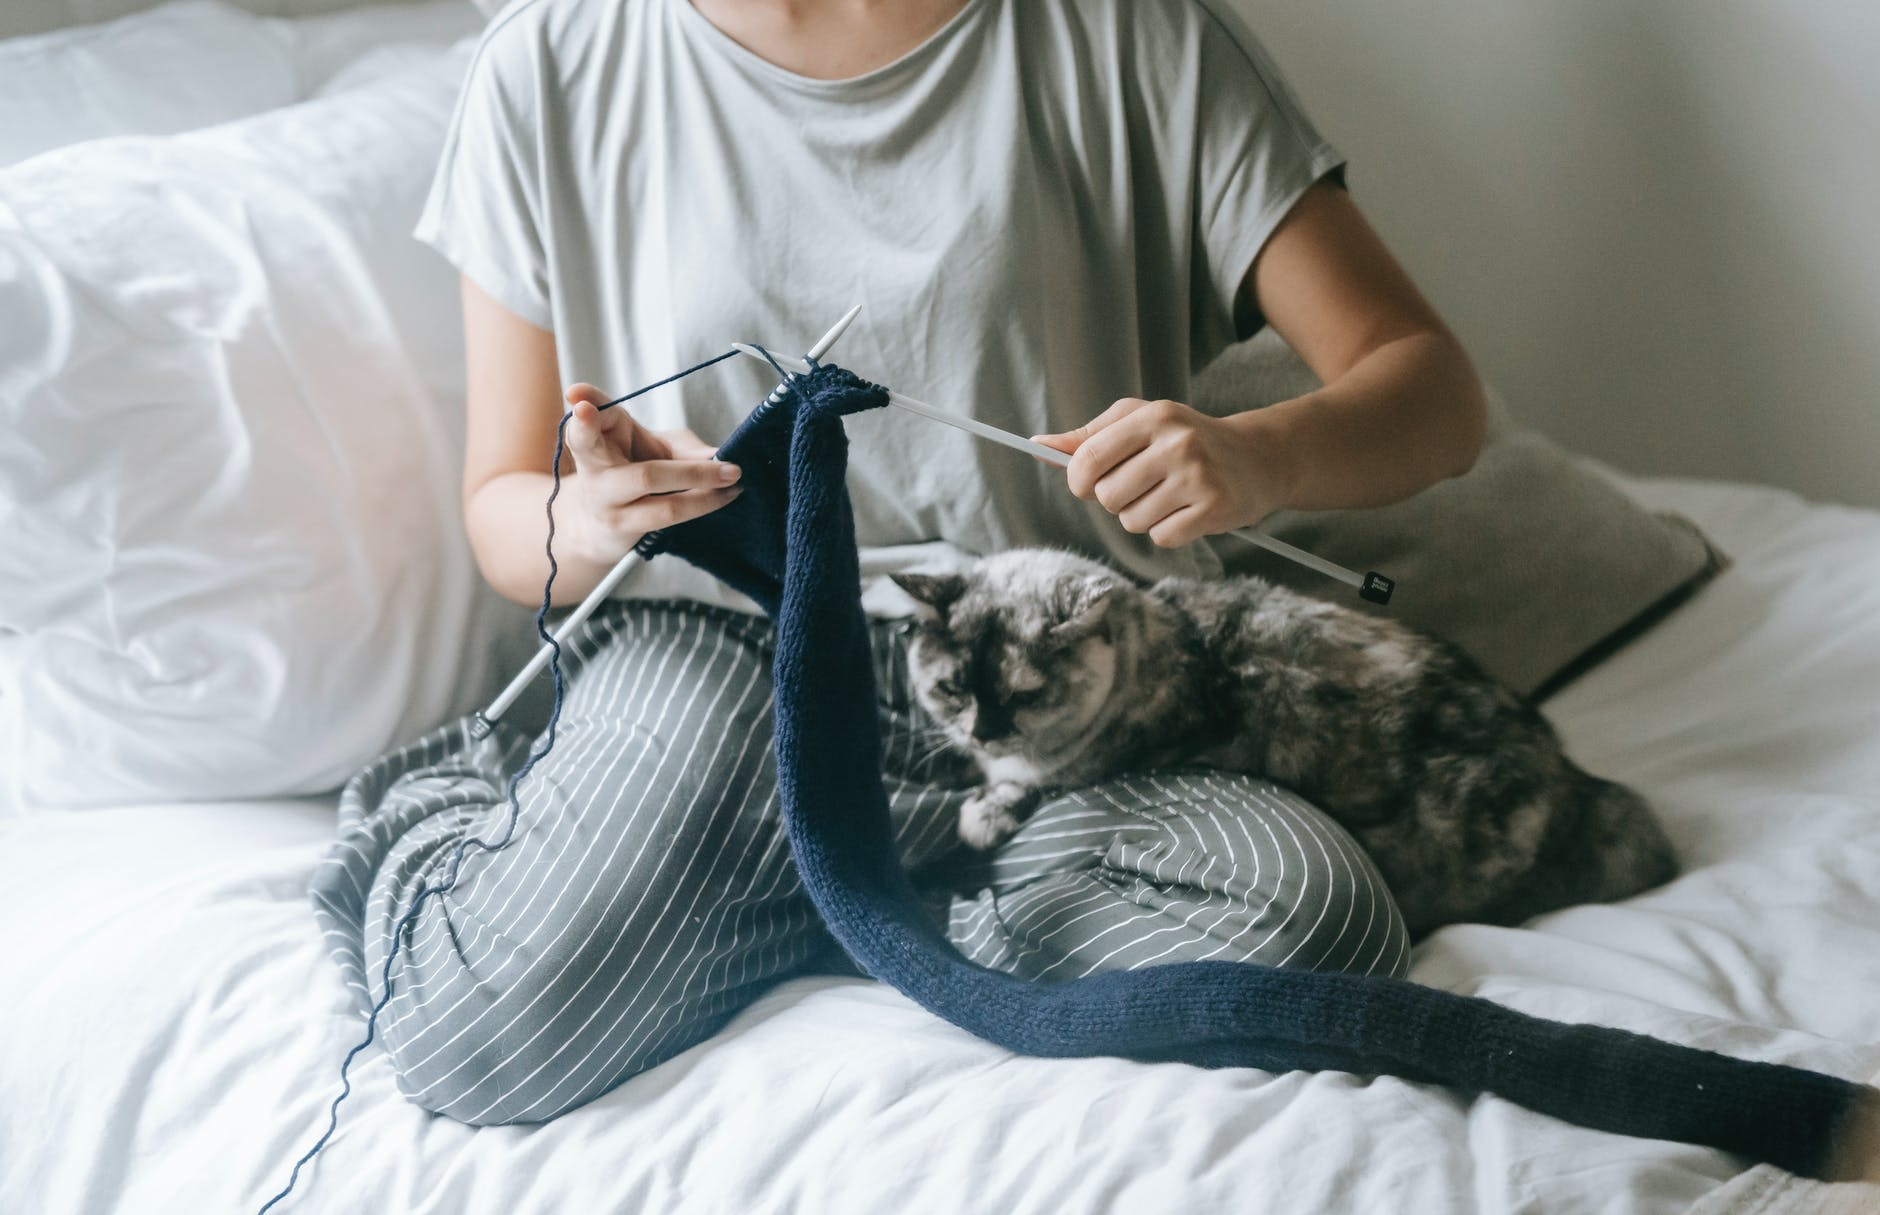 unrecognizable female knitting while recreating on bed with adorable cat